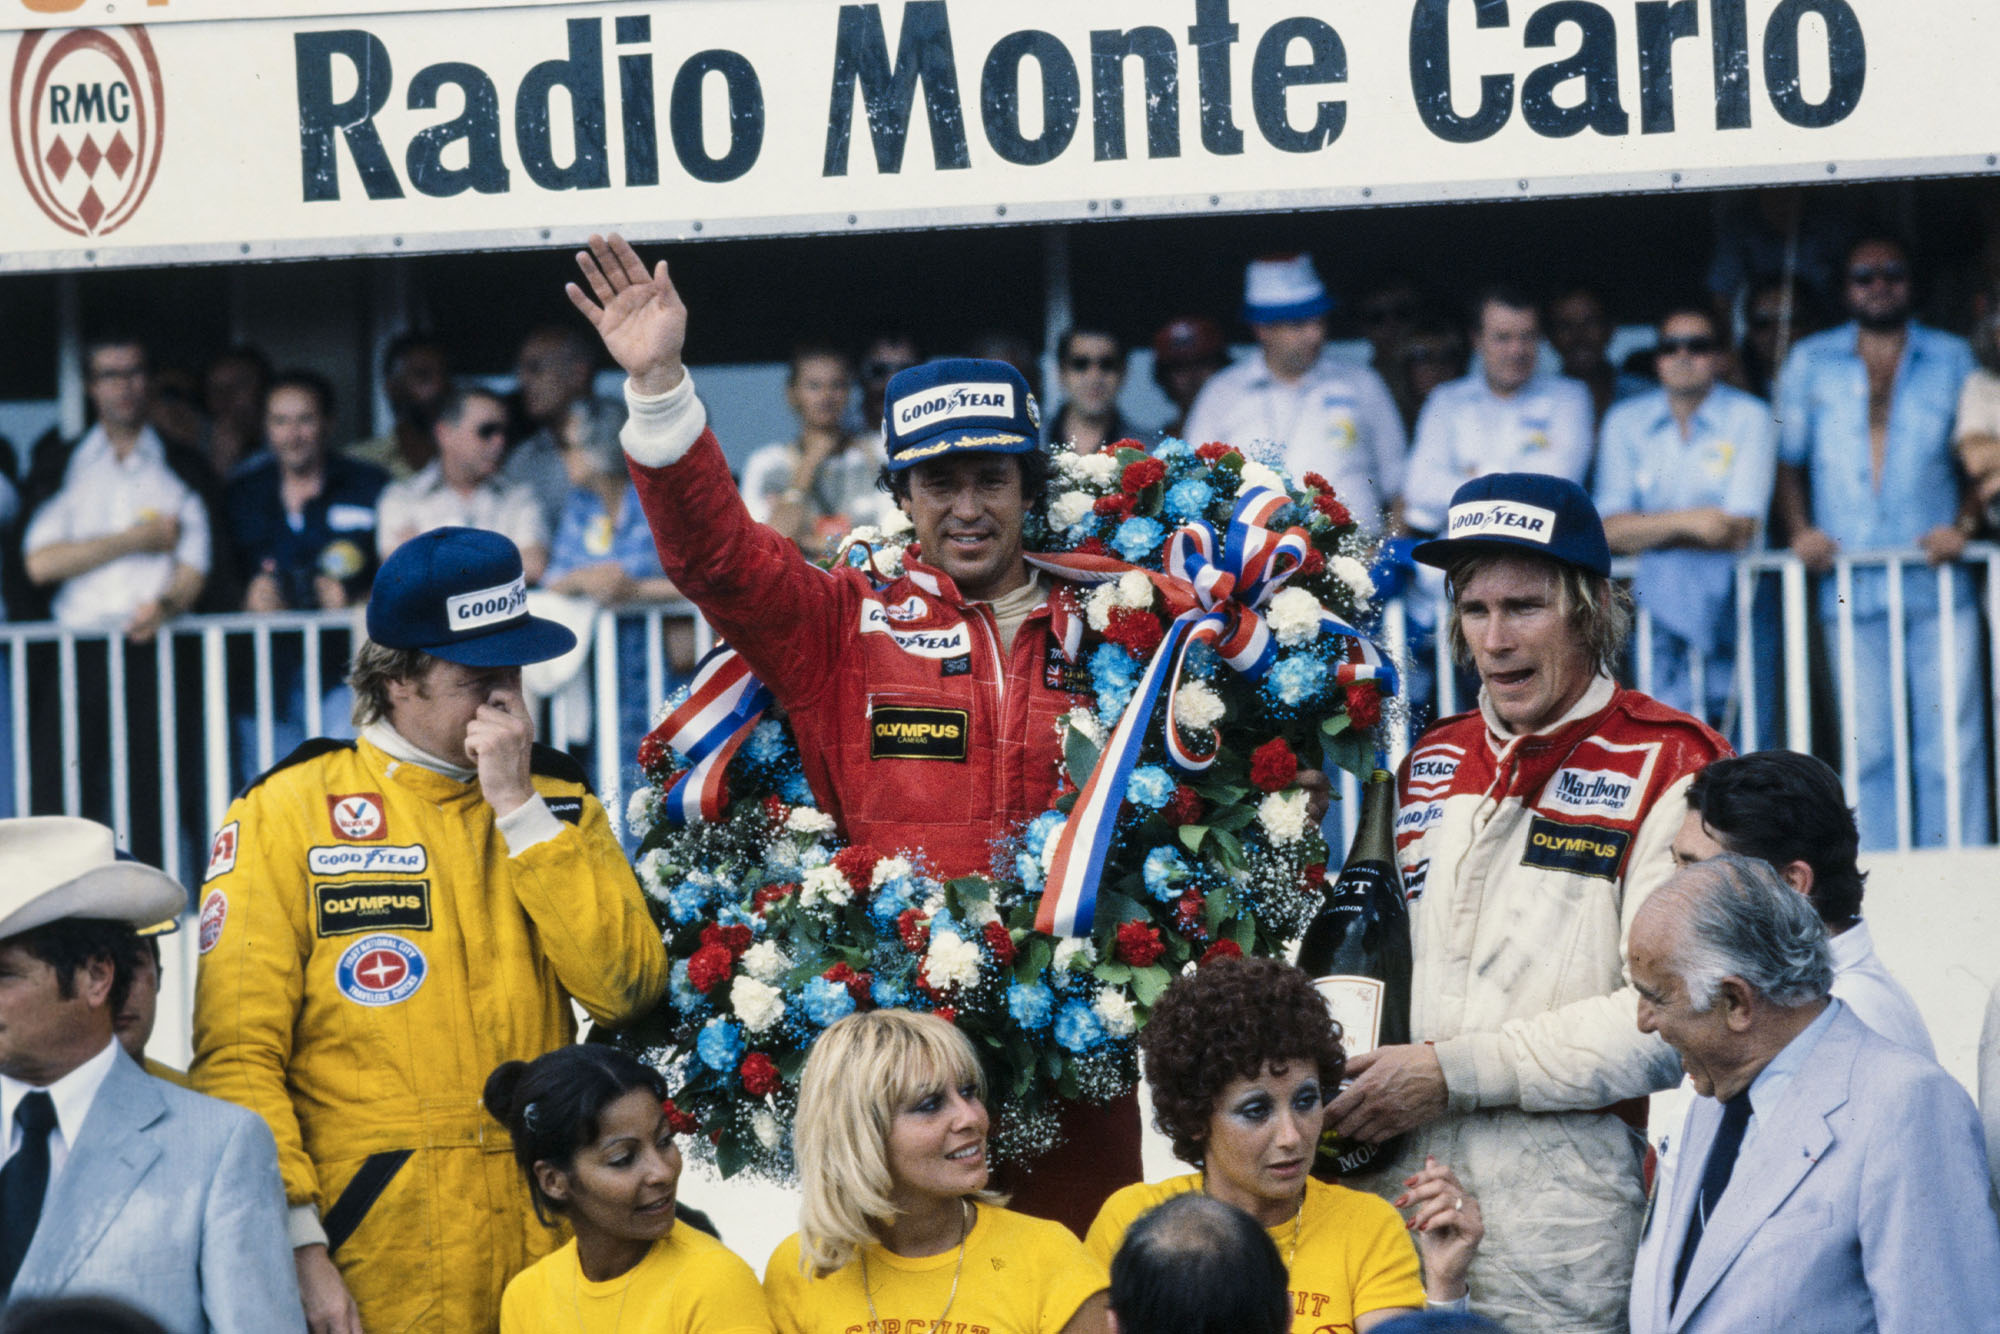 Mario Andretti (Lotus) celebrates winning the 1978 French Grand Prix, Paul Ricard.